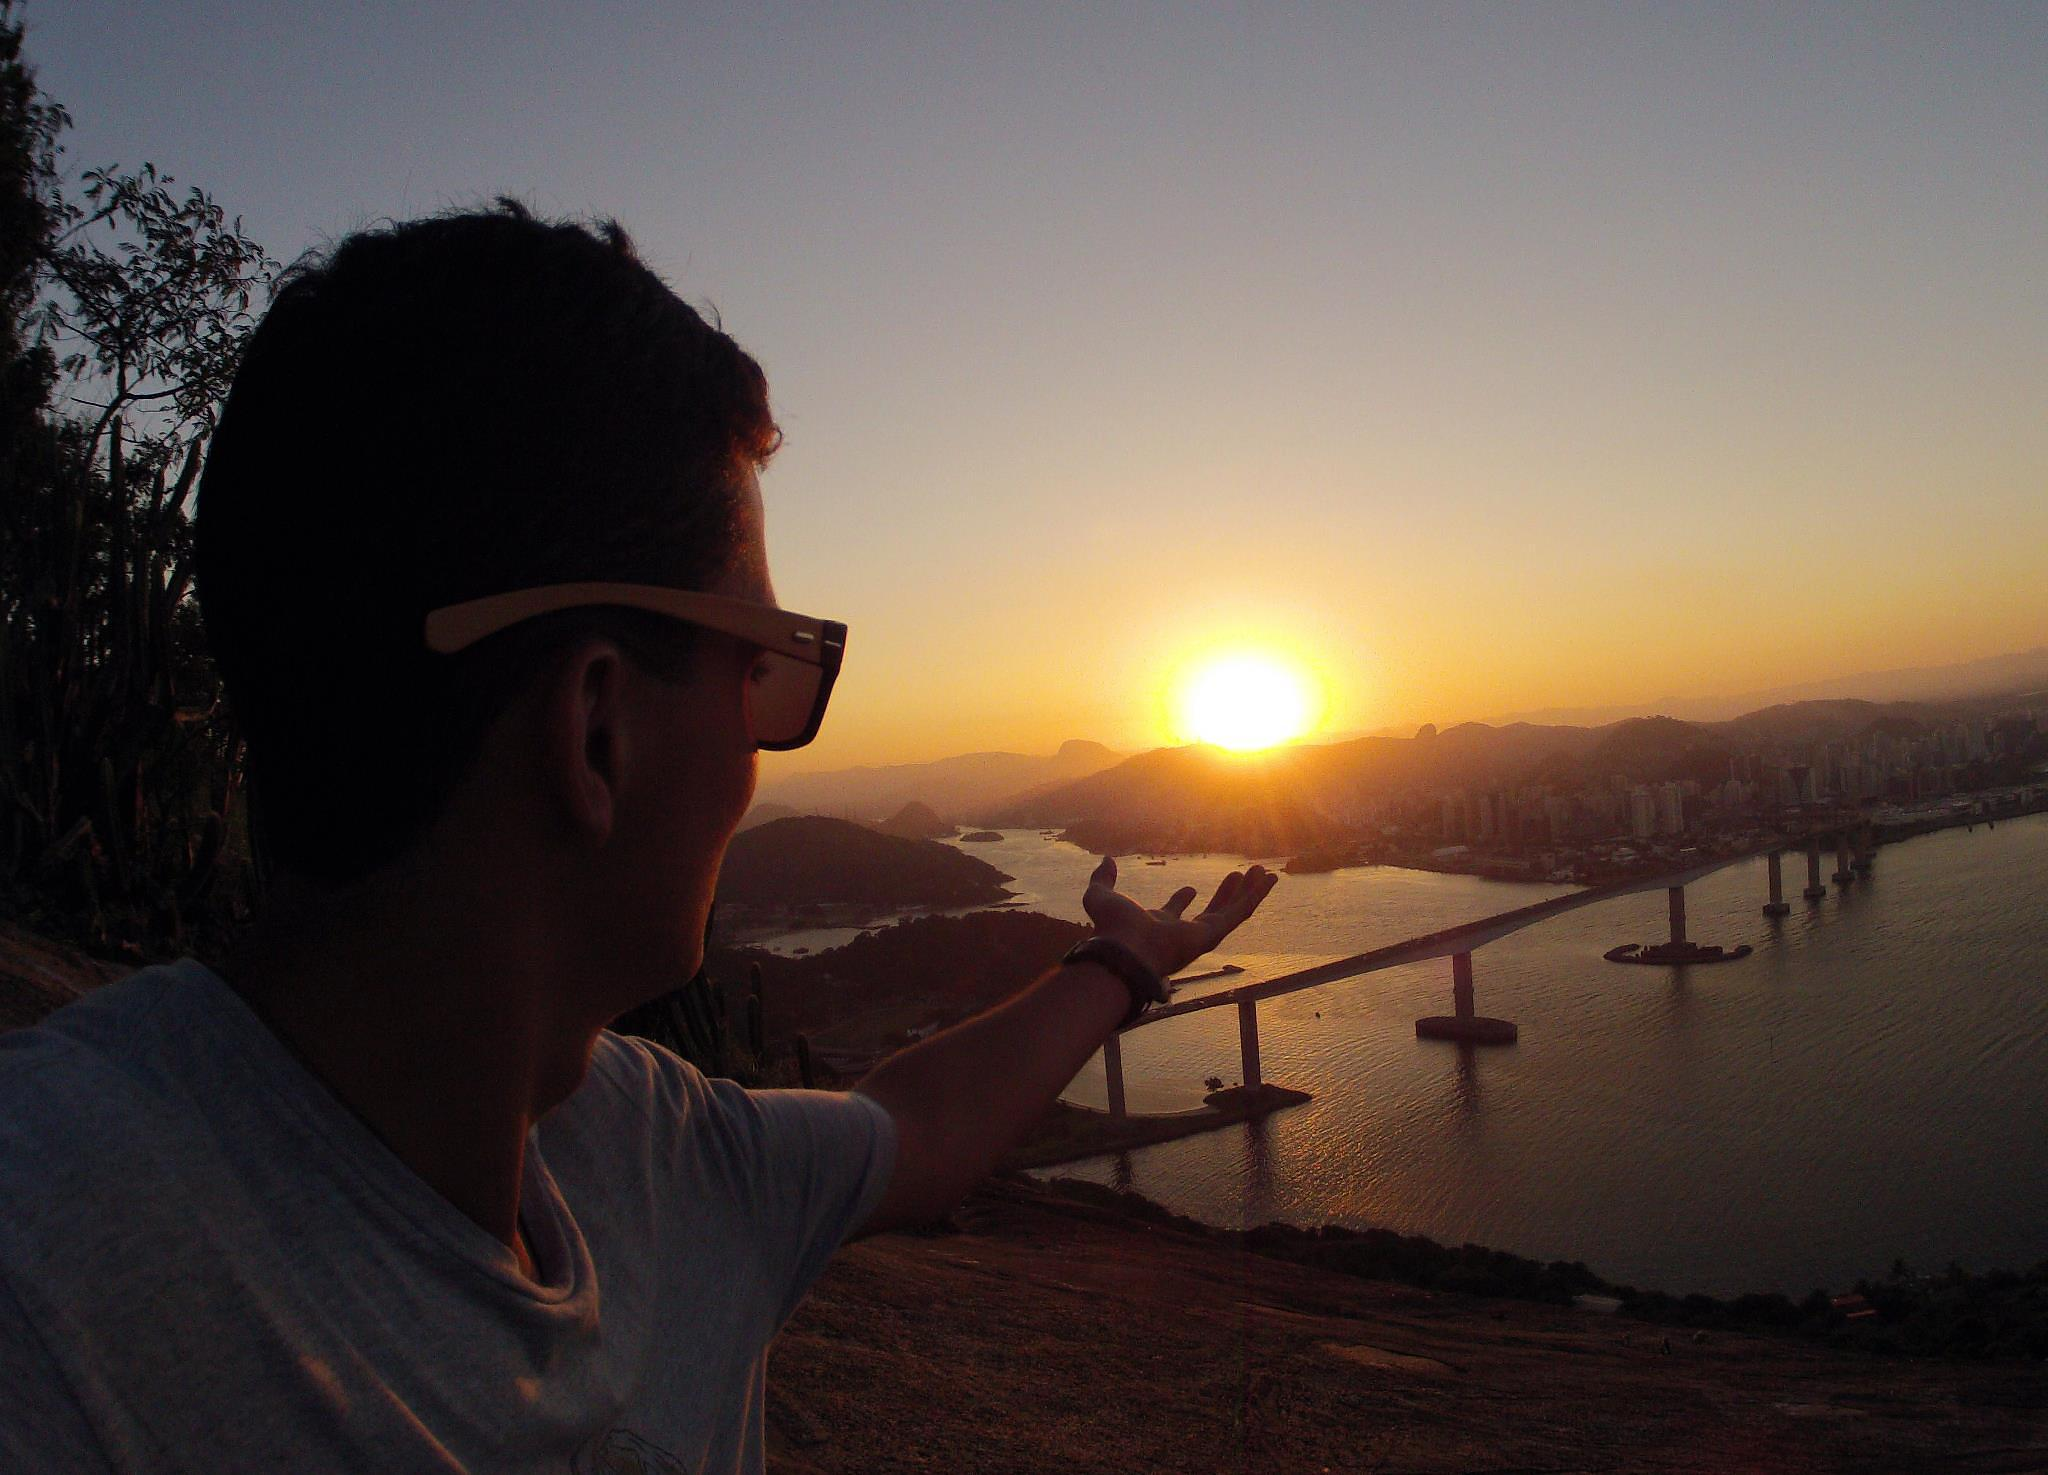 the sun in my hands by Lucas Silveira